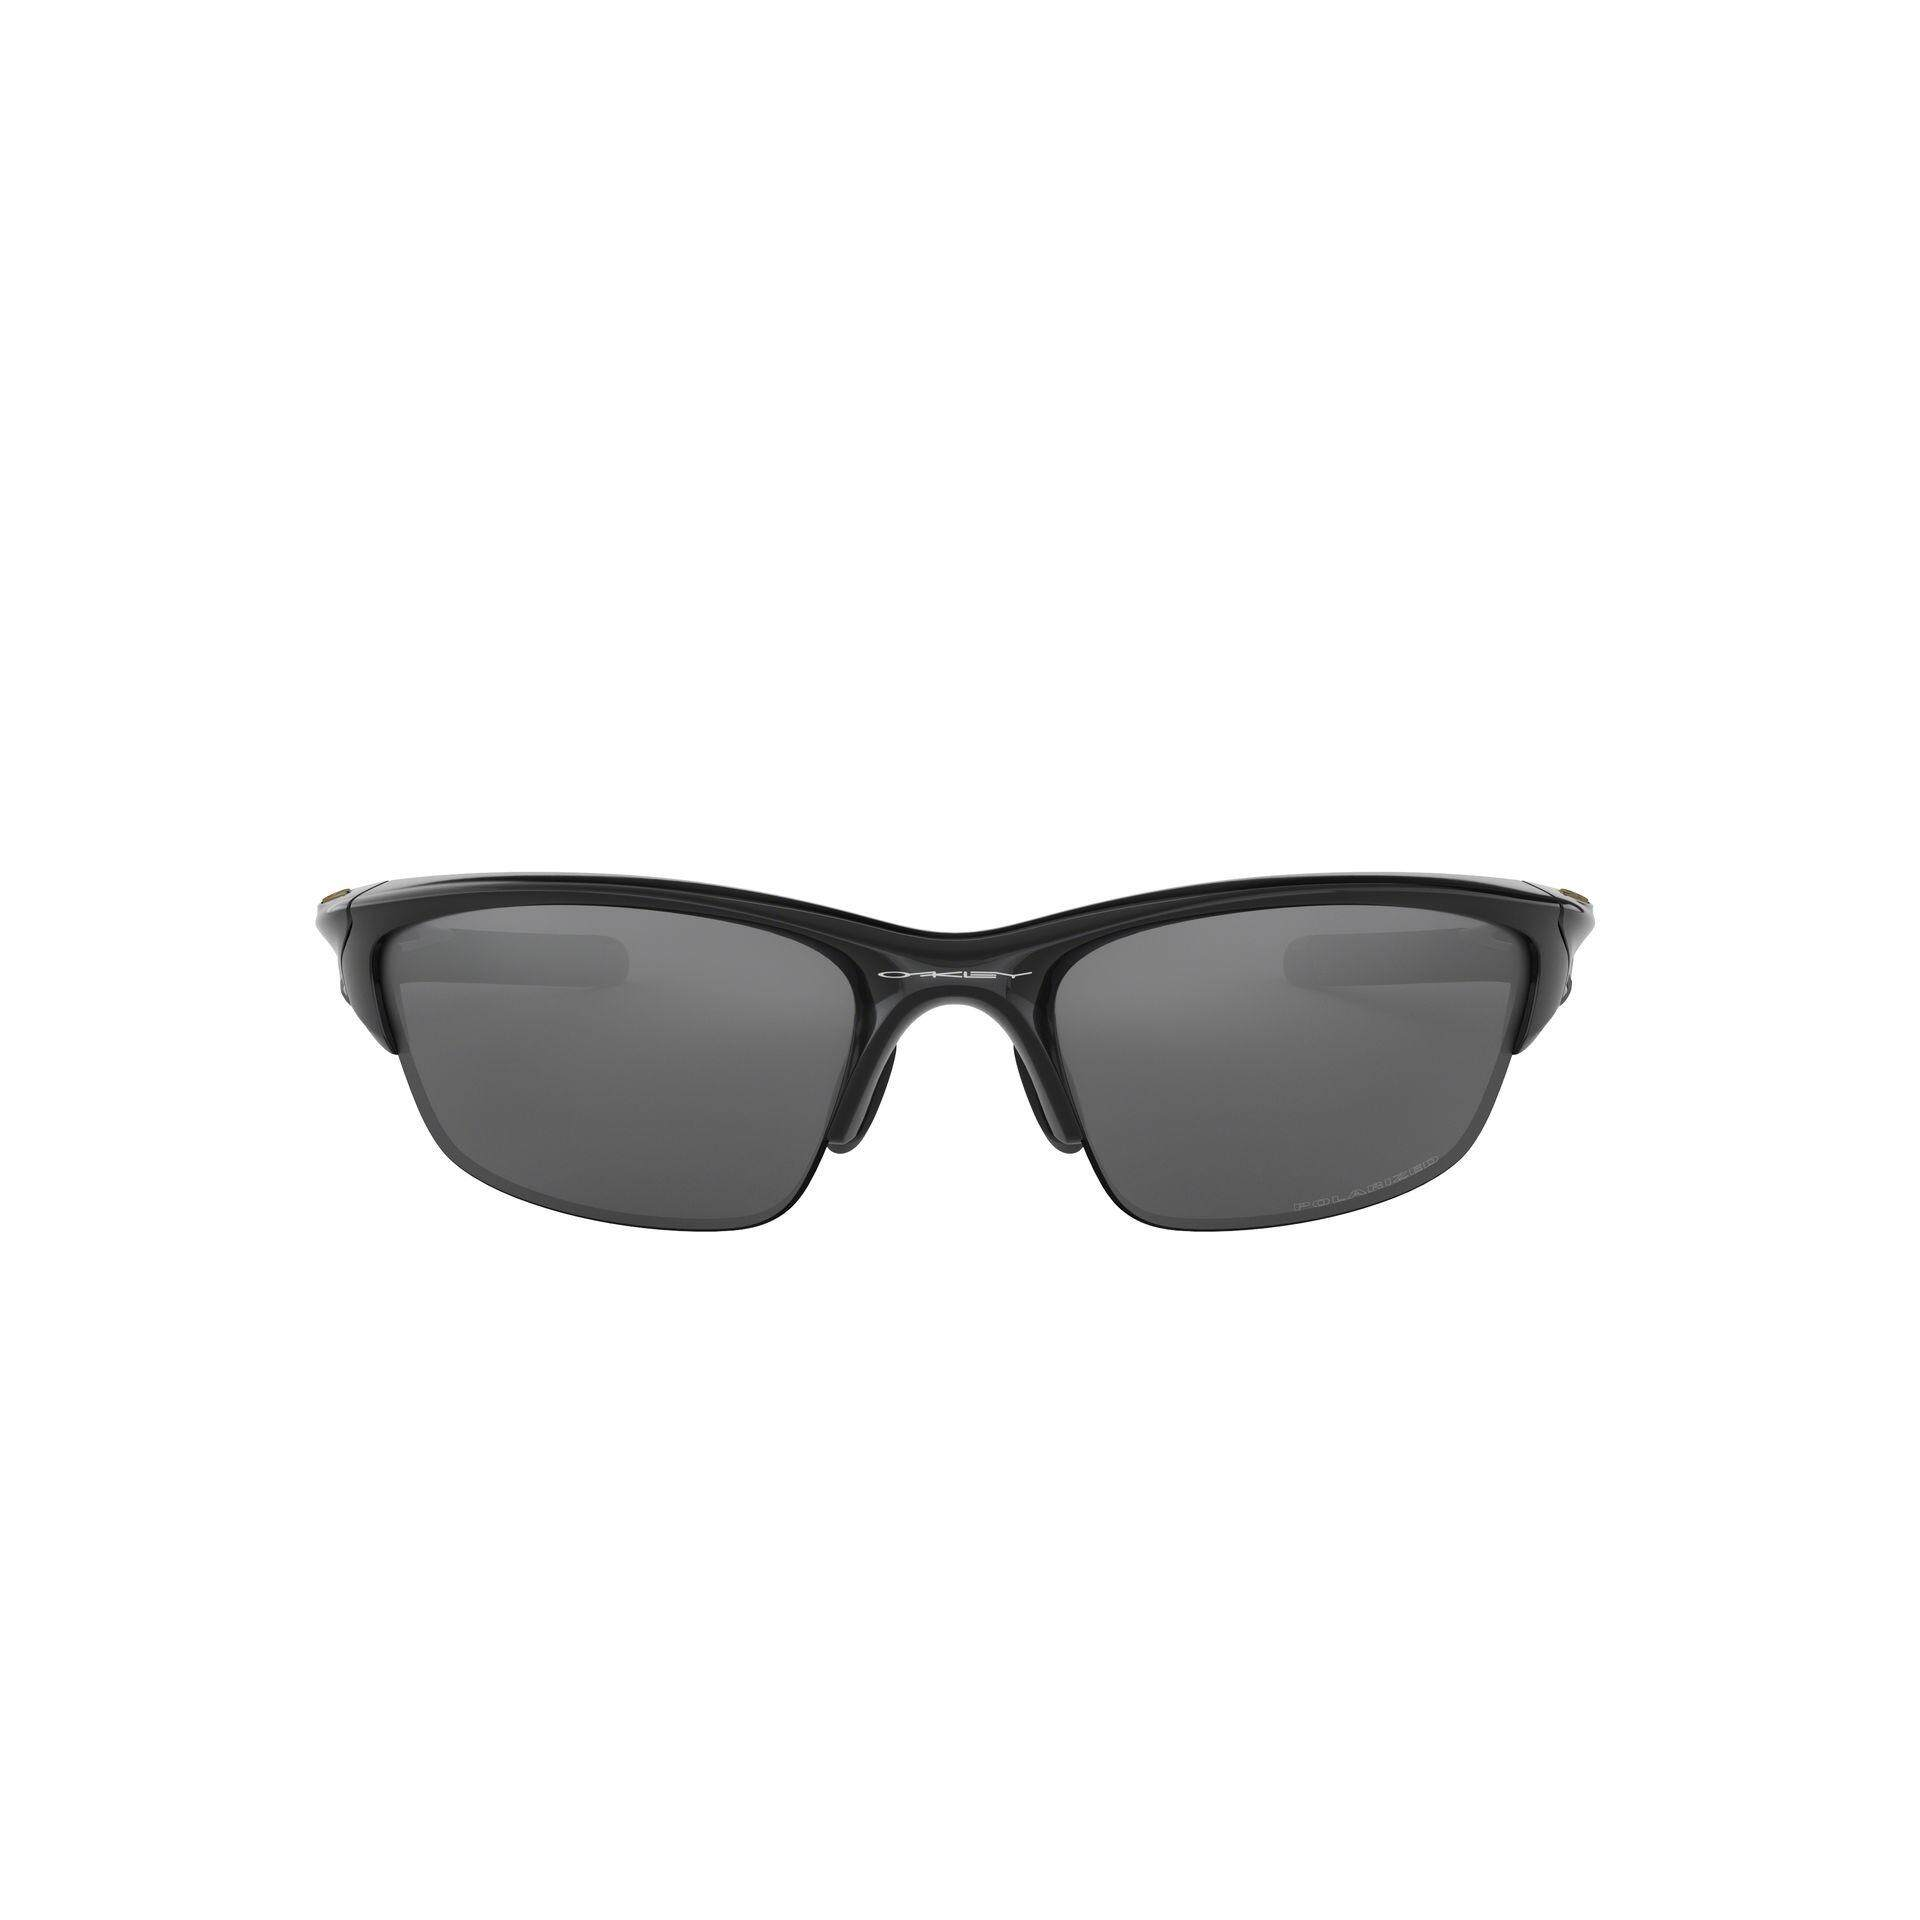 1c1fa268c6 Oakley Men Sunglasses price in Malaysia - Best Oakley Men Sunglasses ...